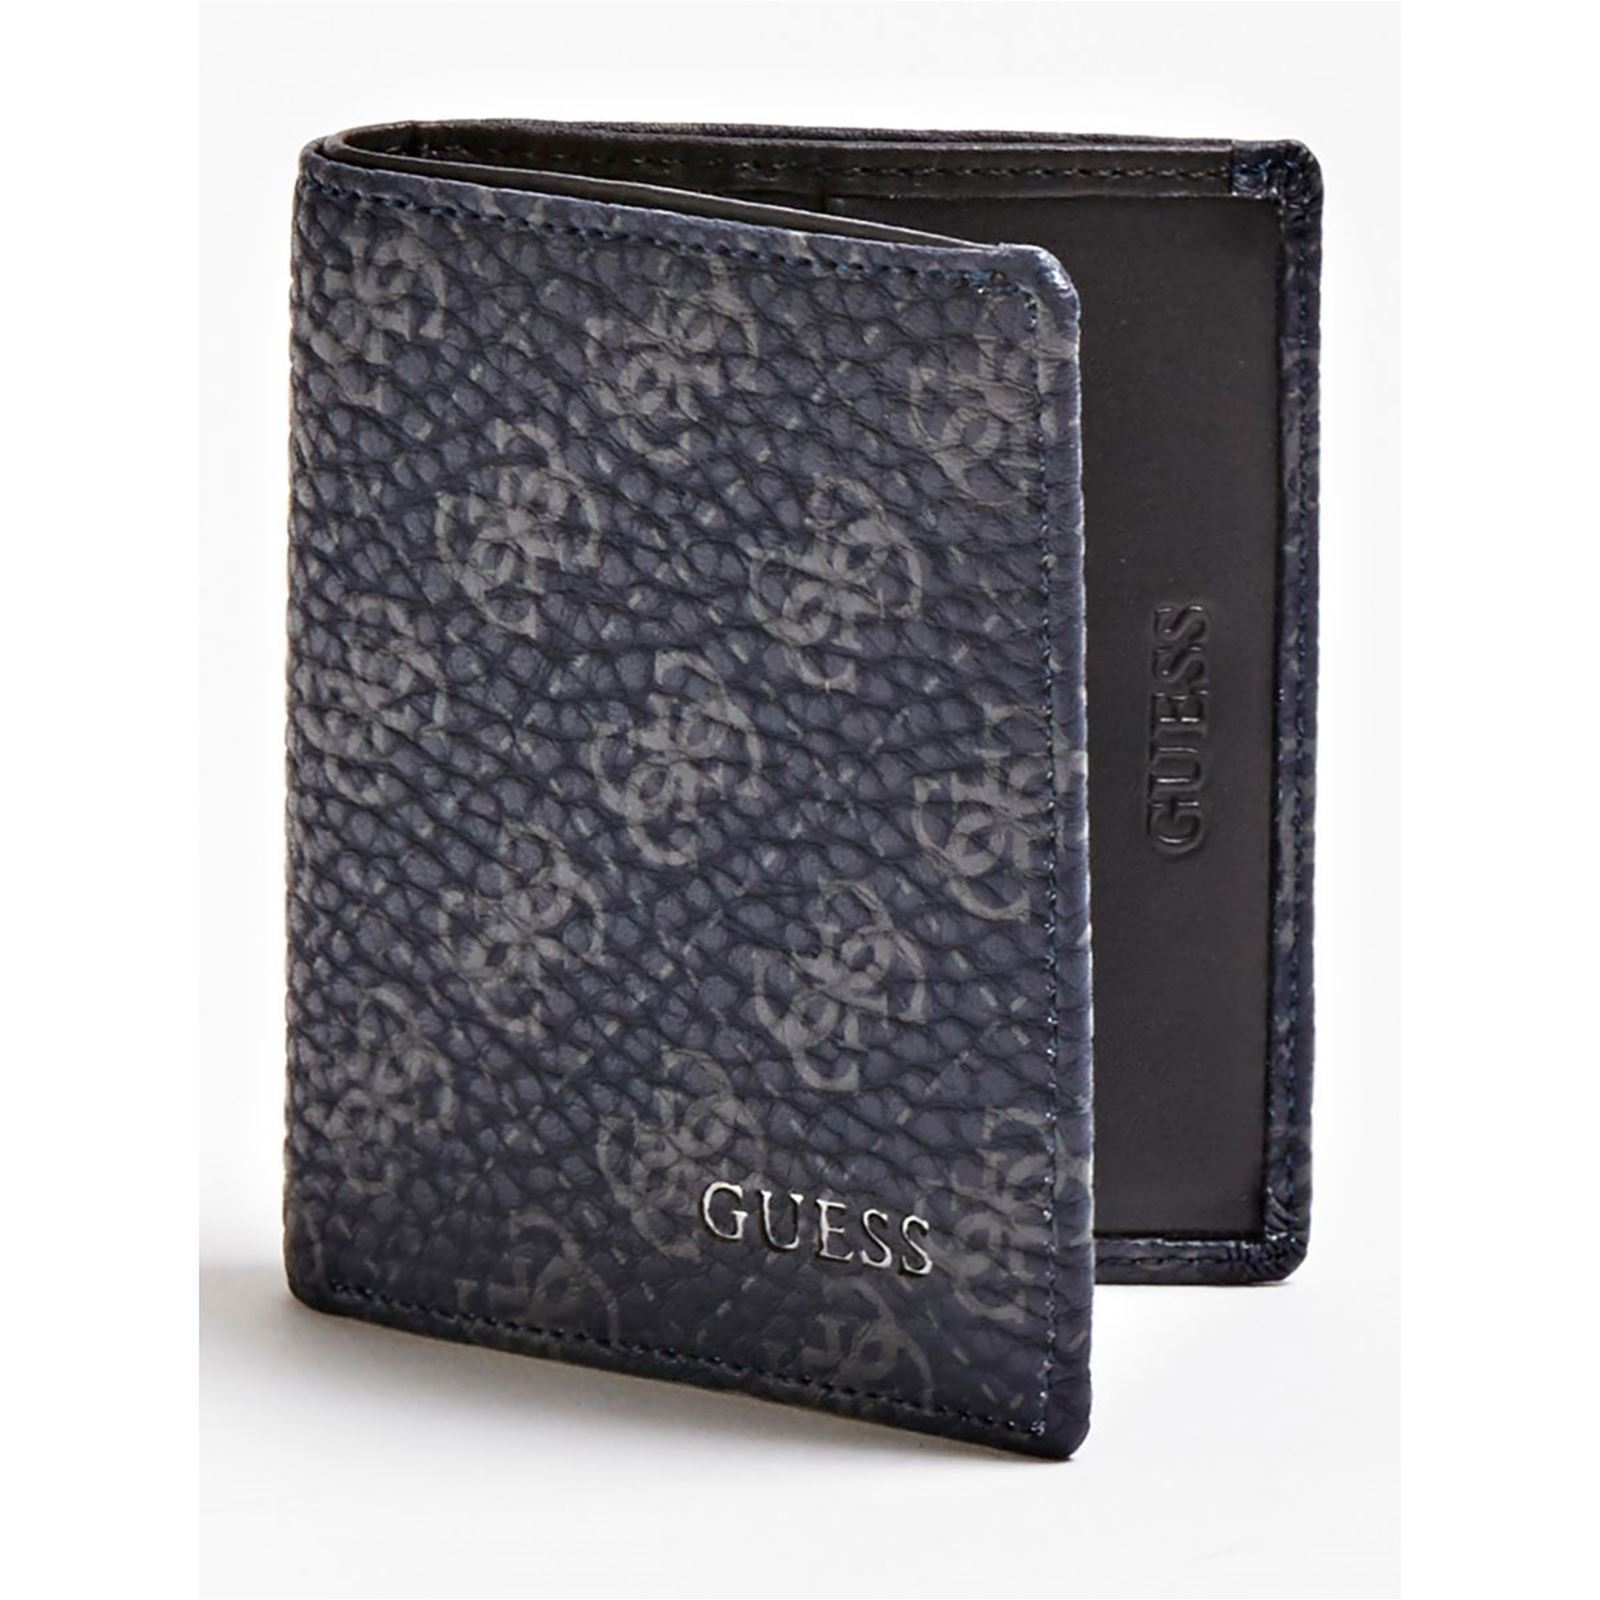 Guess Bleu City Portefeuille Guess City Portefeuille YXawE